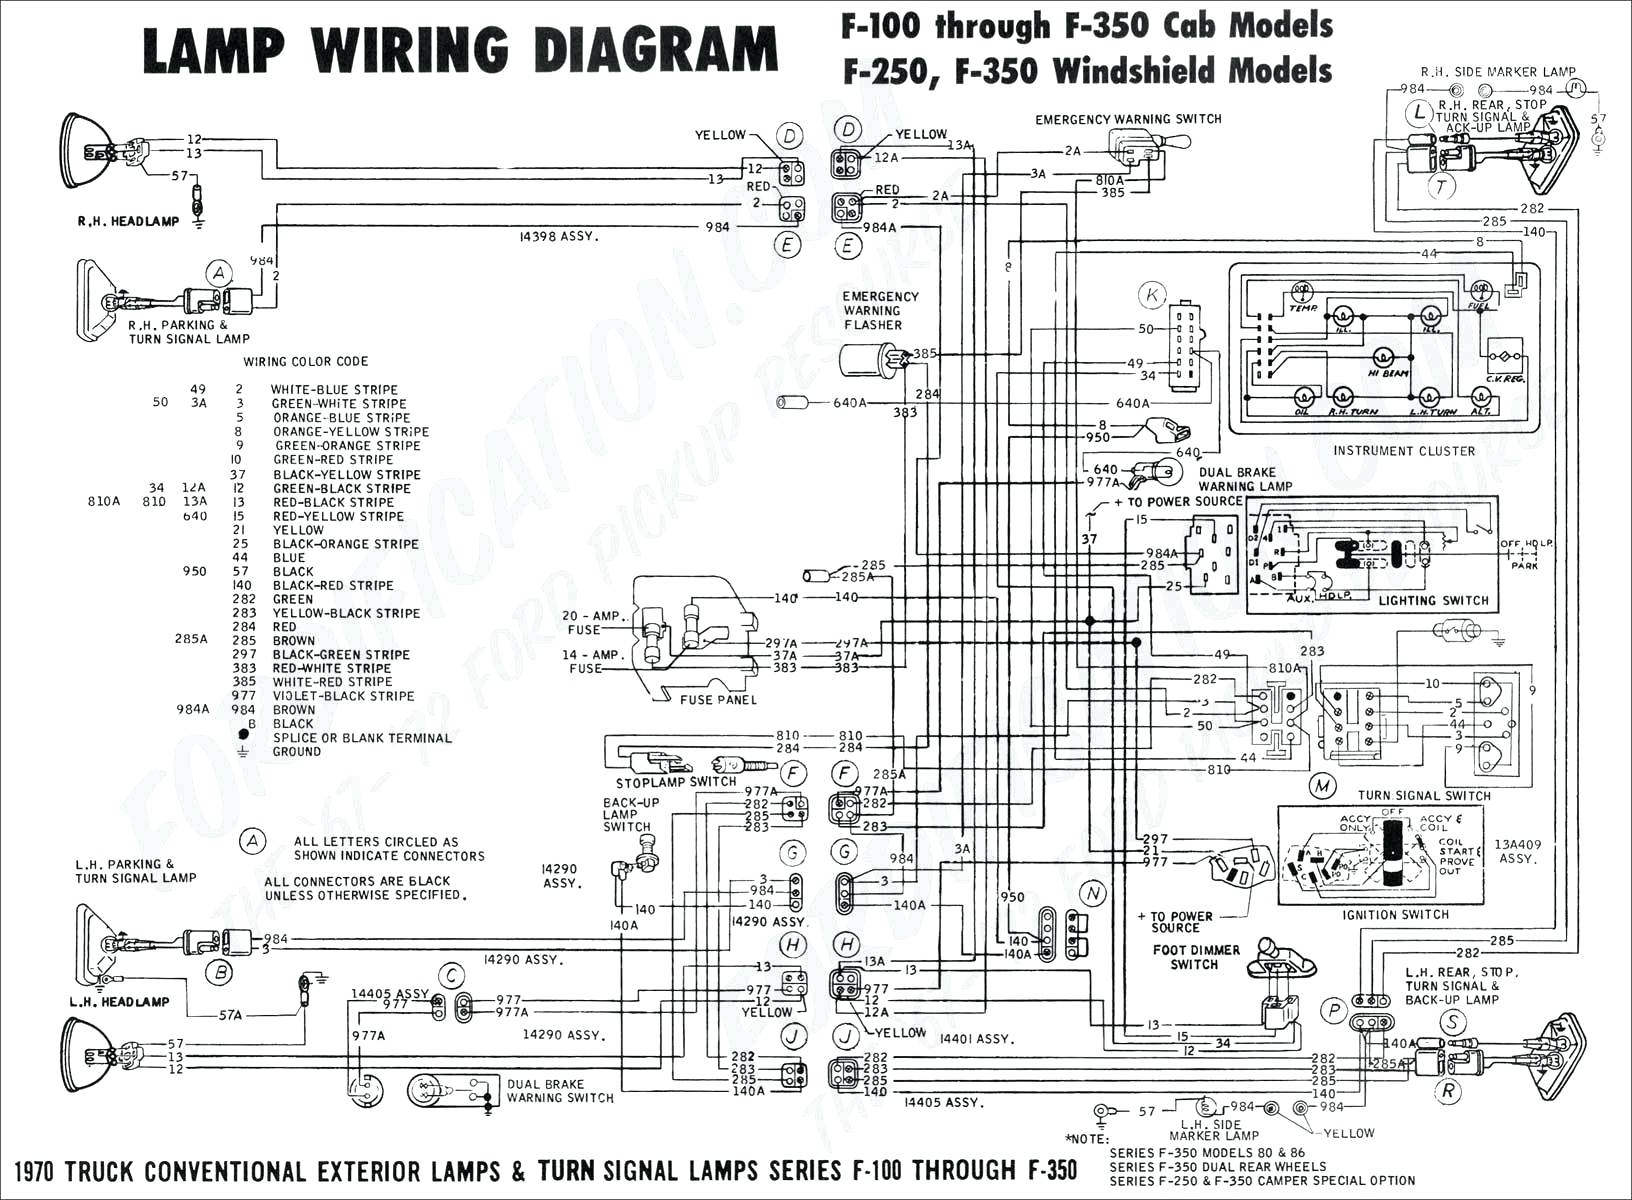 razor go kart wiring diagram Download-wiring diagram for 1997 ford mustang stereo autos weblog wire center u2022 rh daniablub co 18-p